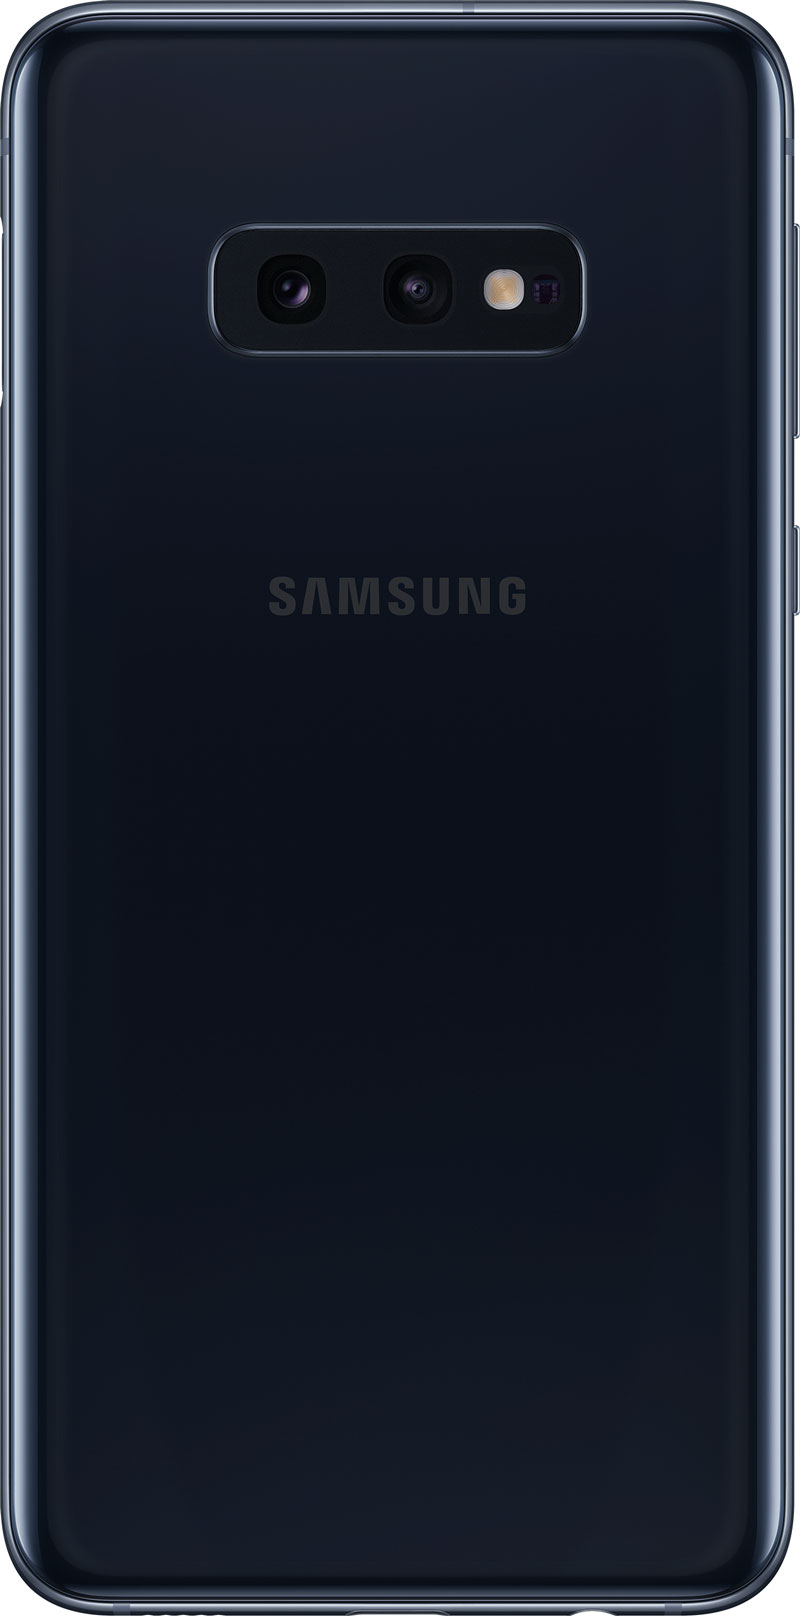 samsung_s10e_black_back_001.jpg